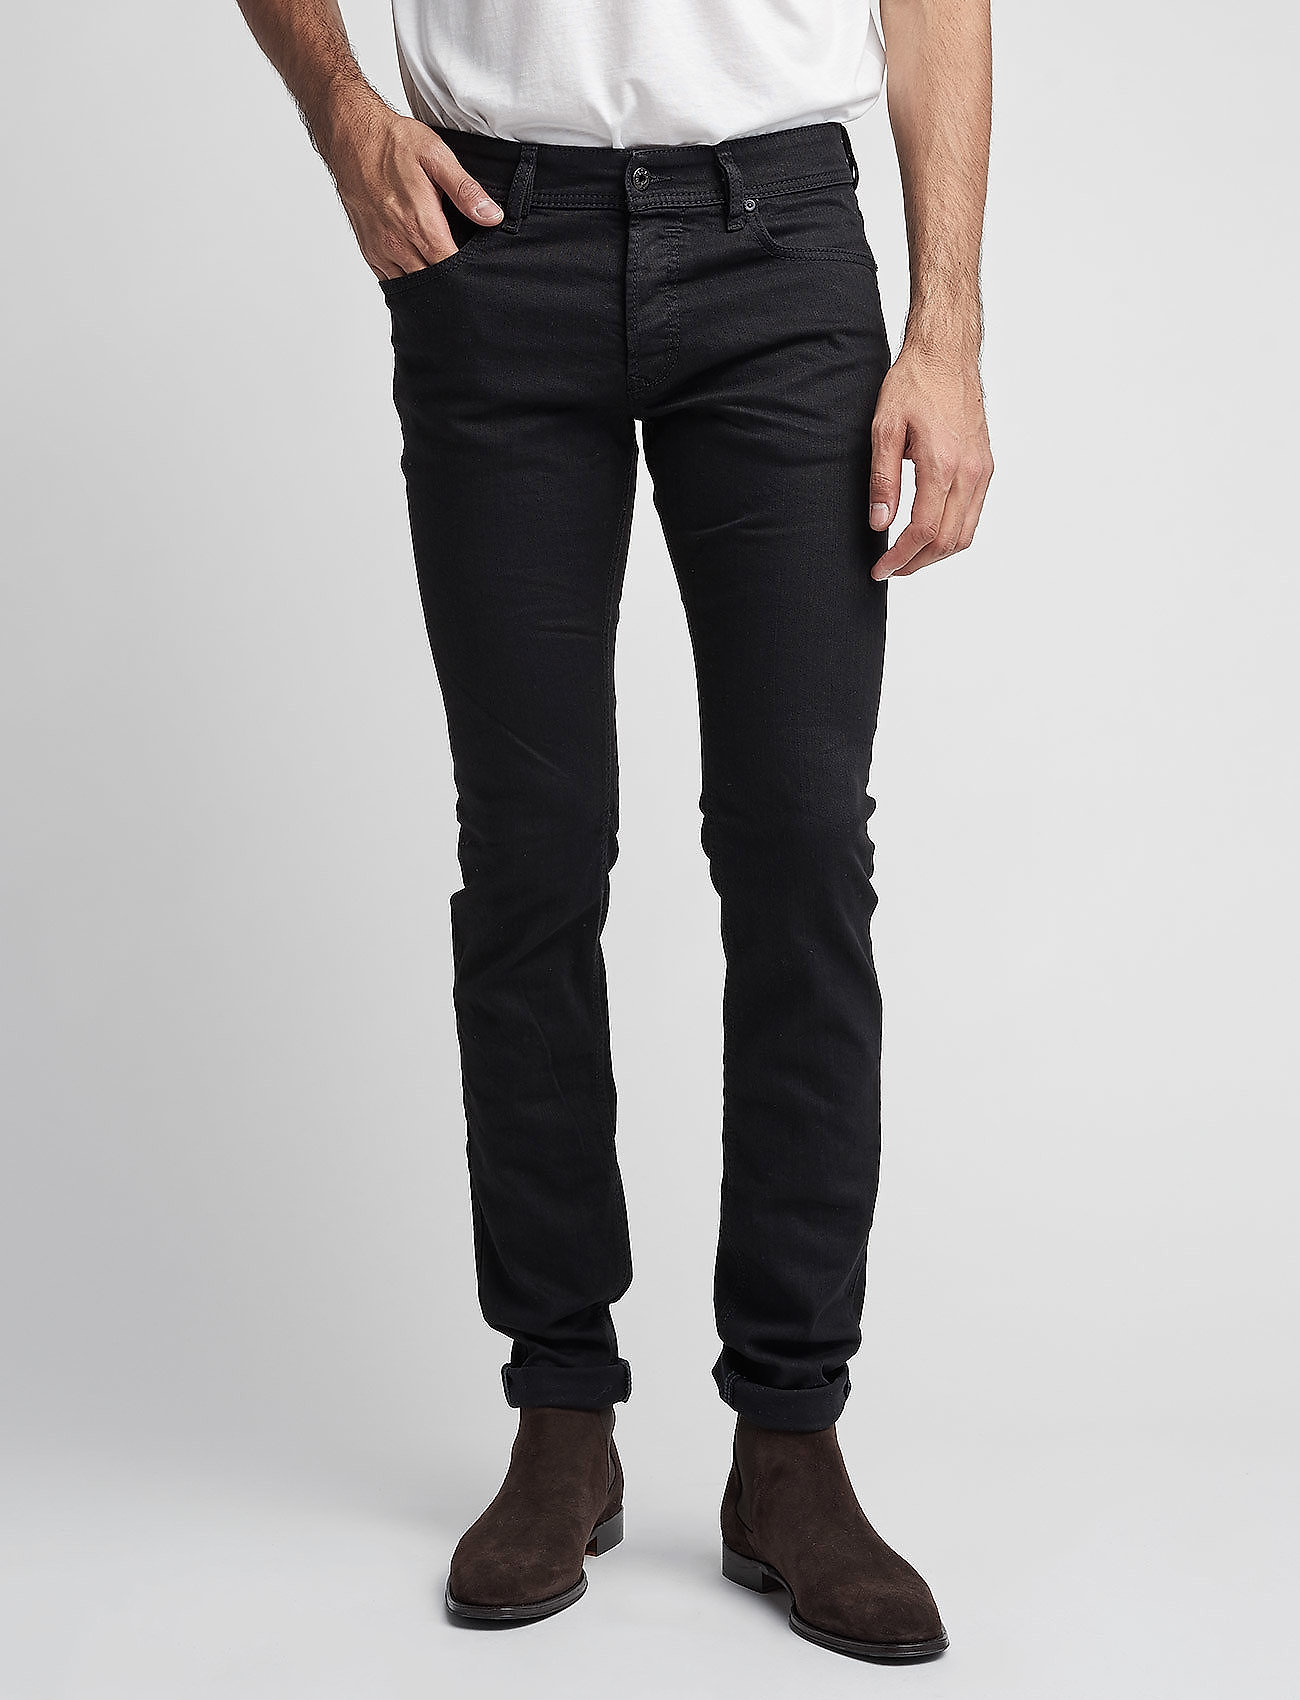 Diesel Men - SLEENKER - slim jeans - grey - 0